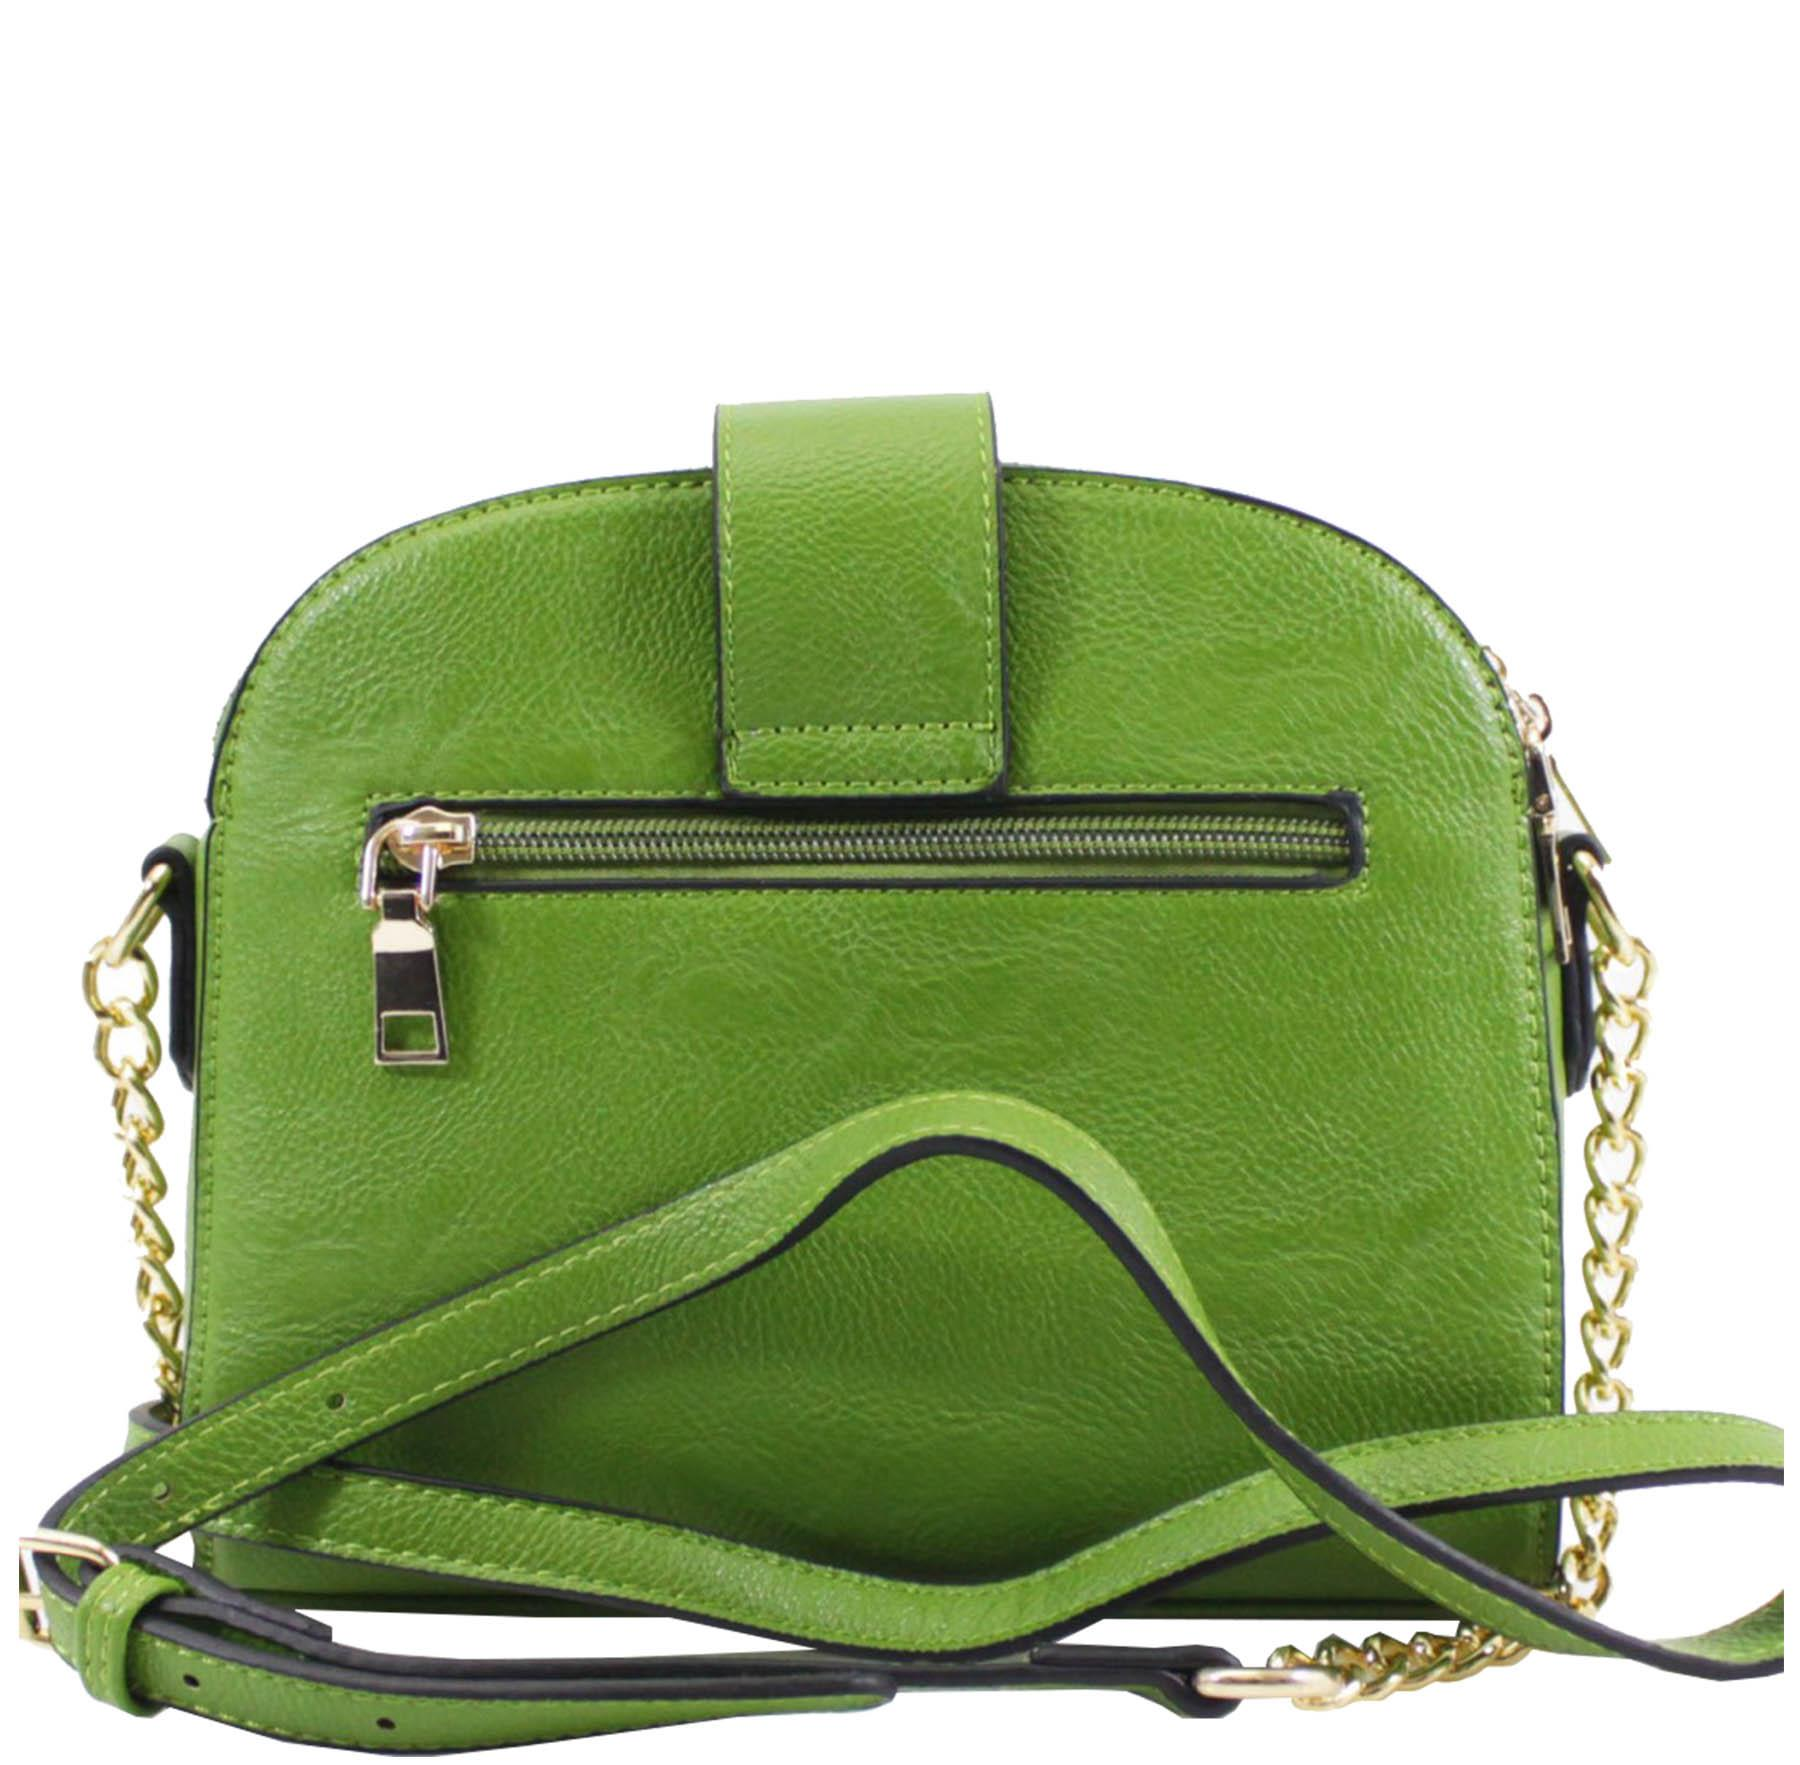 New Women's 3 Compartments Faux Leather Fashion Shoulder Bag